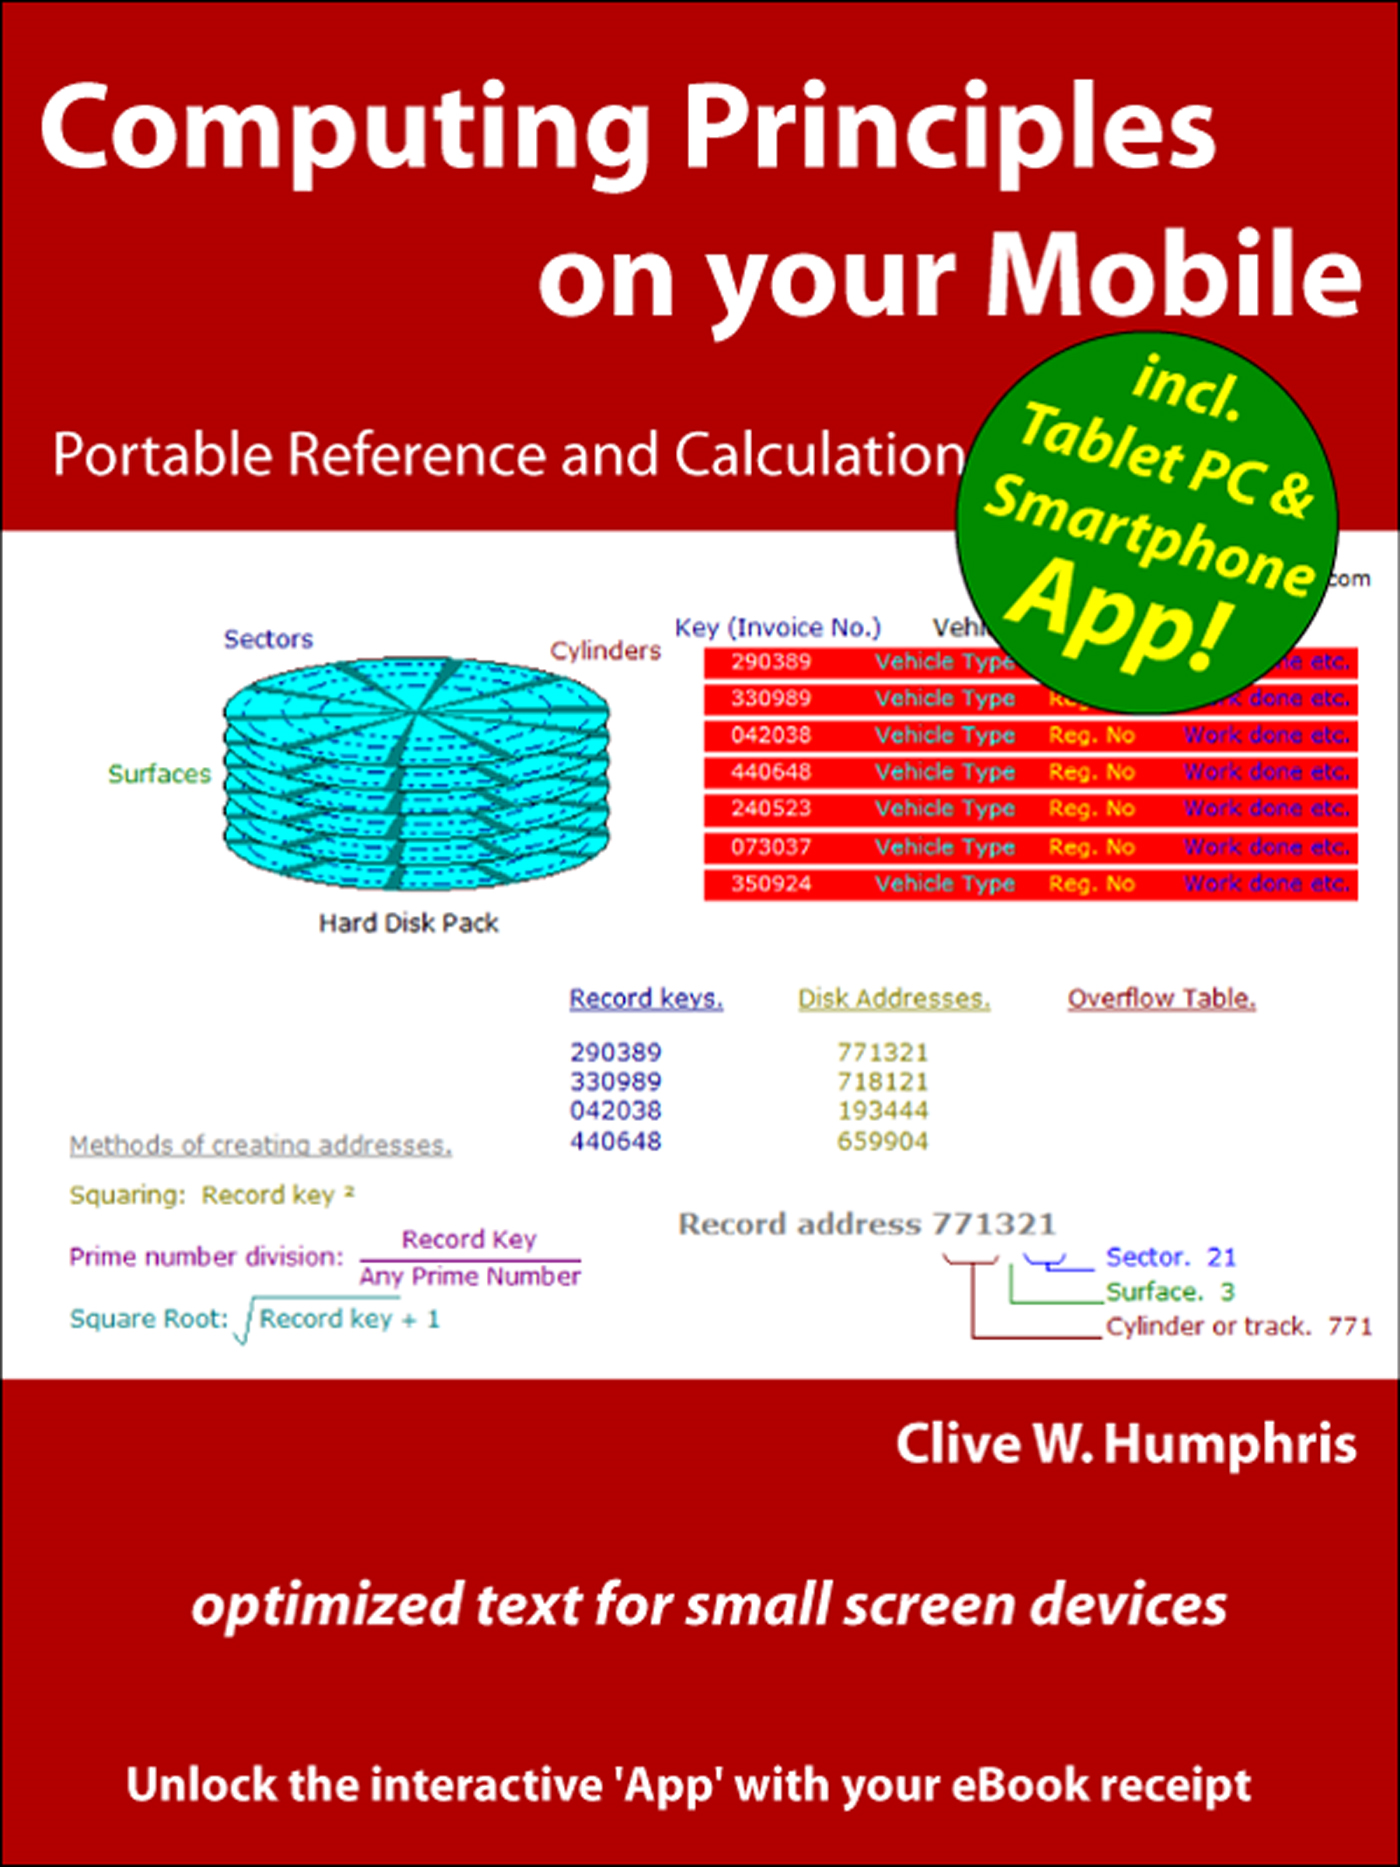 Computing Principles on your Mobile